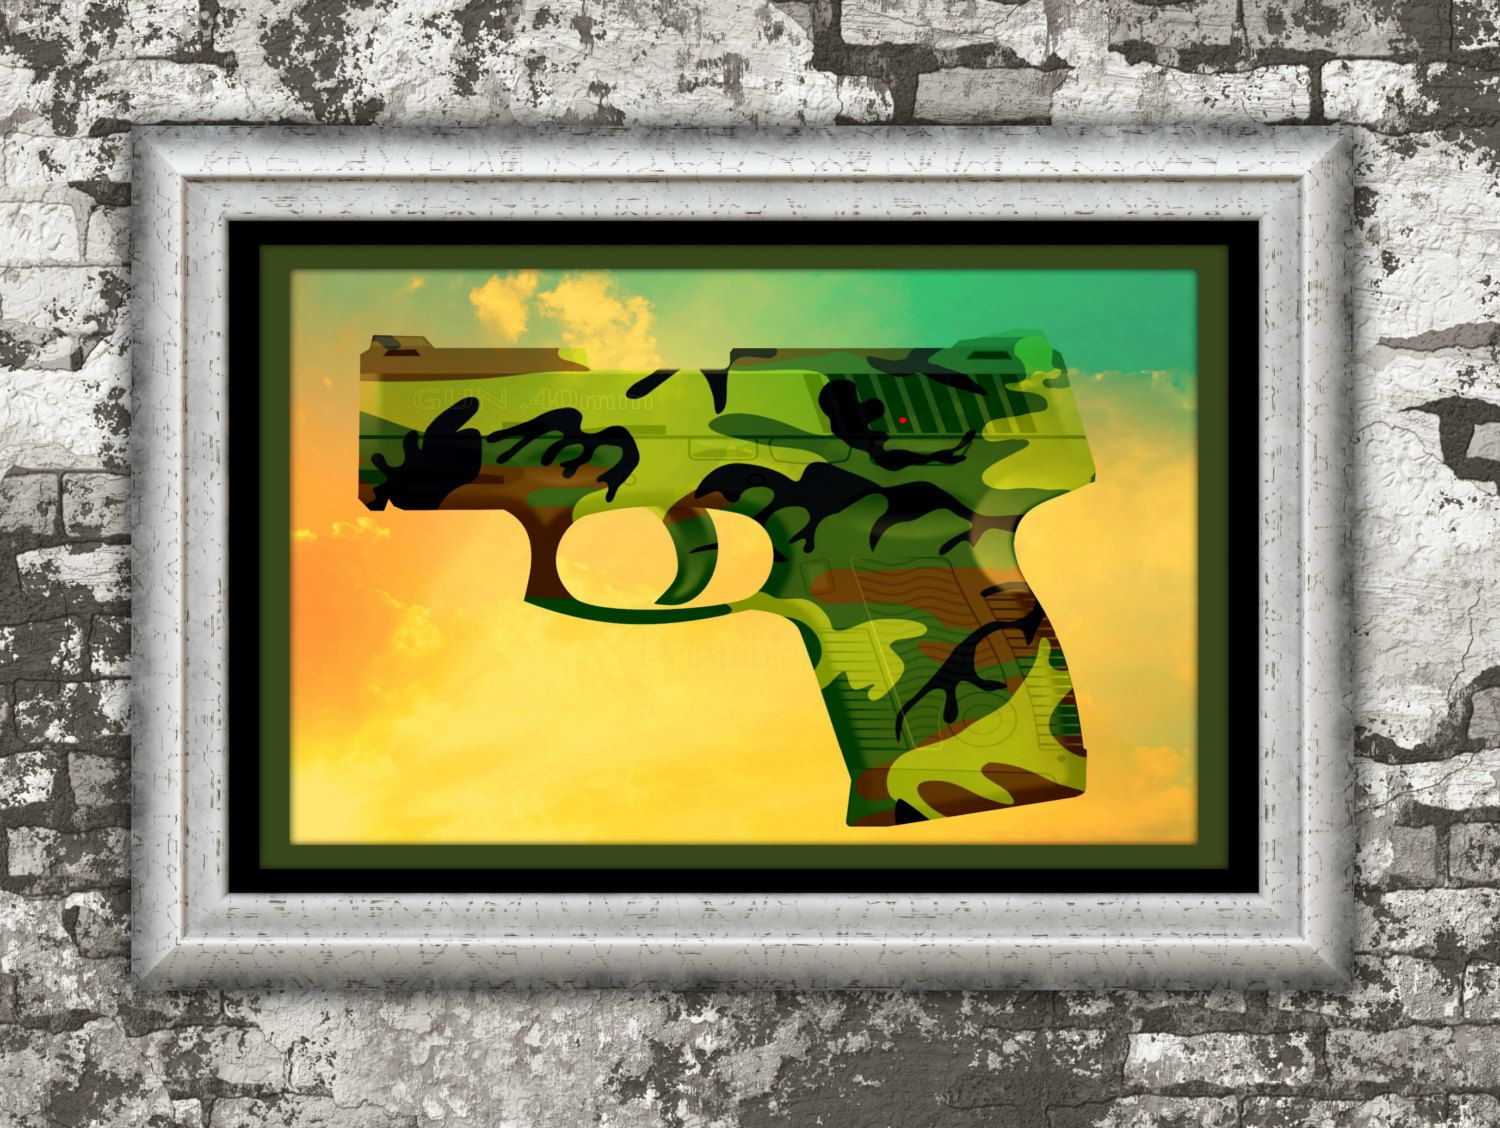 Camo Print,#Handgun, #Military, #Lawenforcement, #Glock, #Guns,#NRA ...